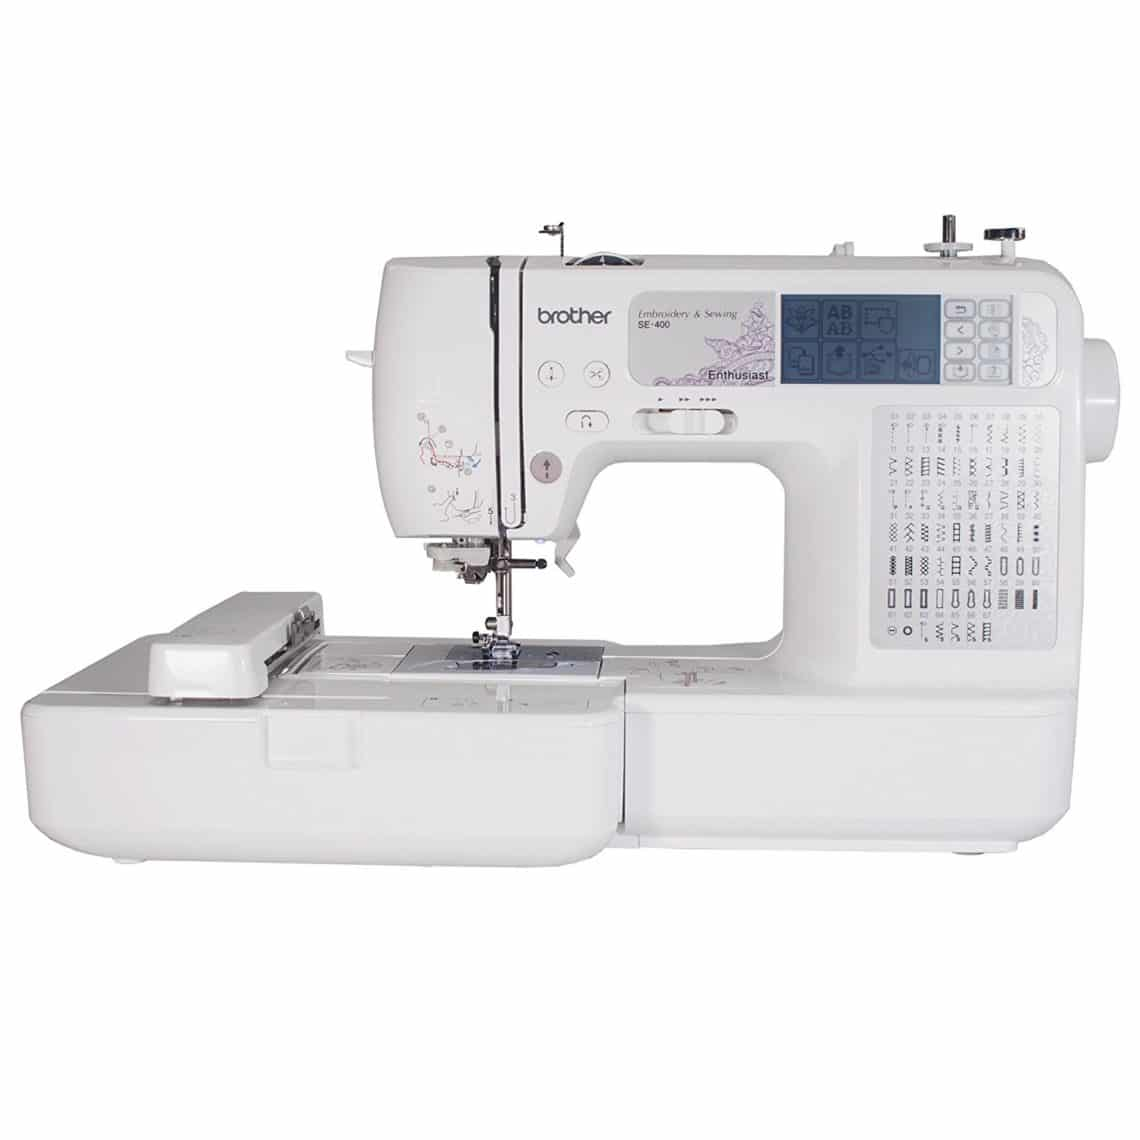 Best Sewing Machine For Quilting 2020 Best Embroidery Machines Review   August 2019 – Buyer's Guide